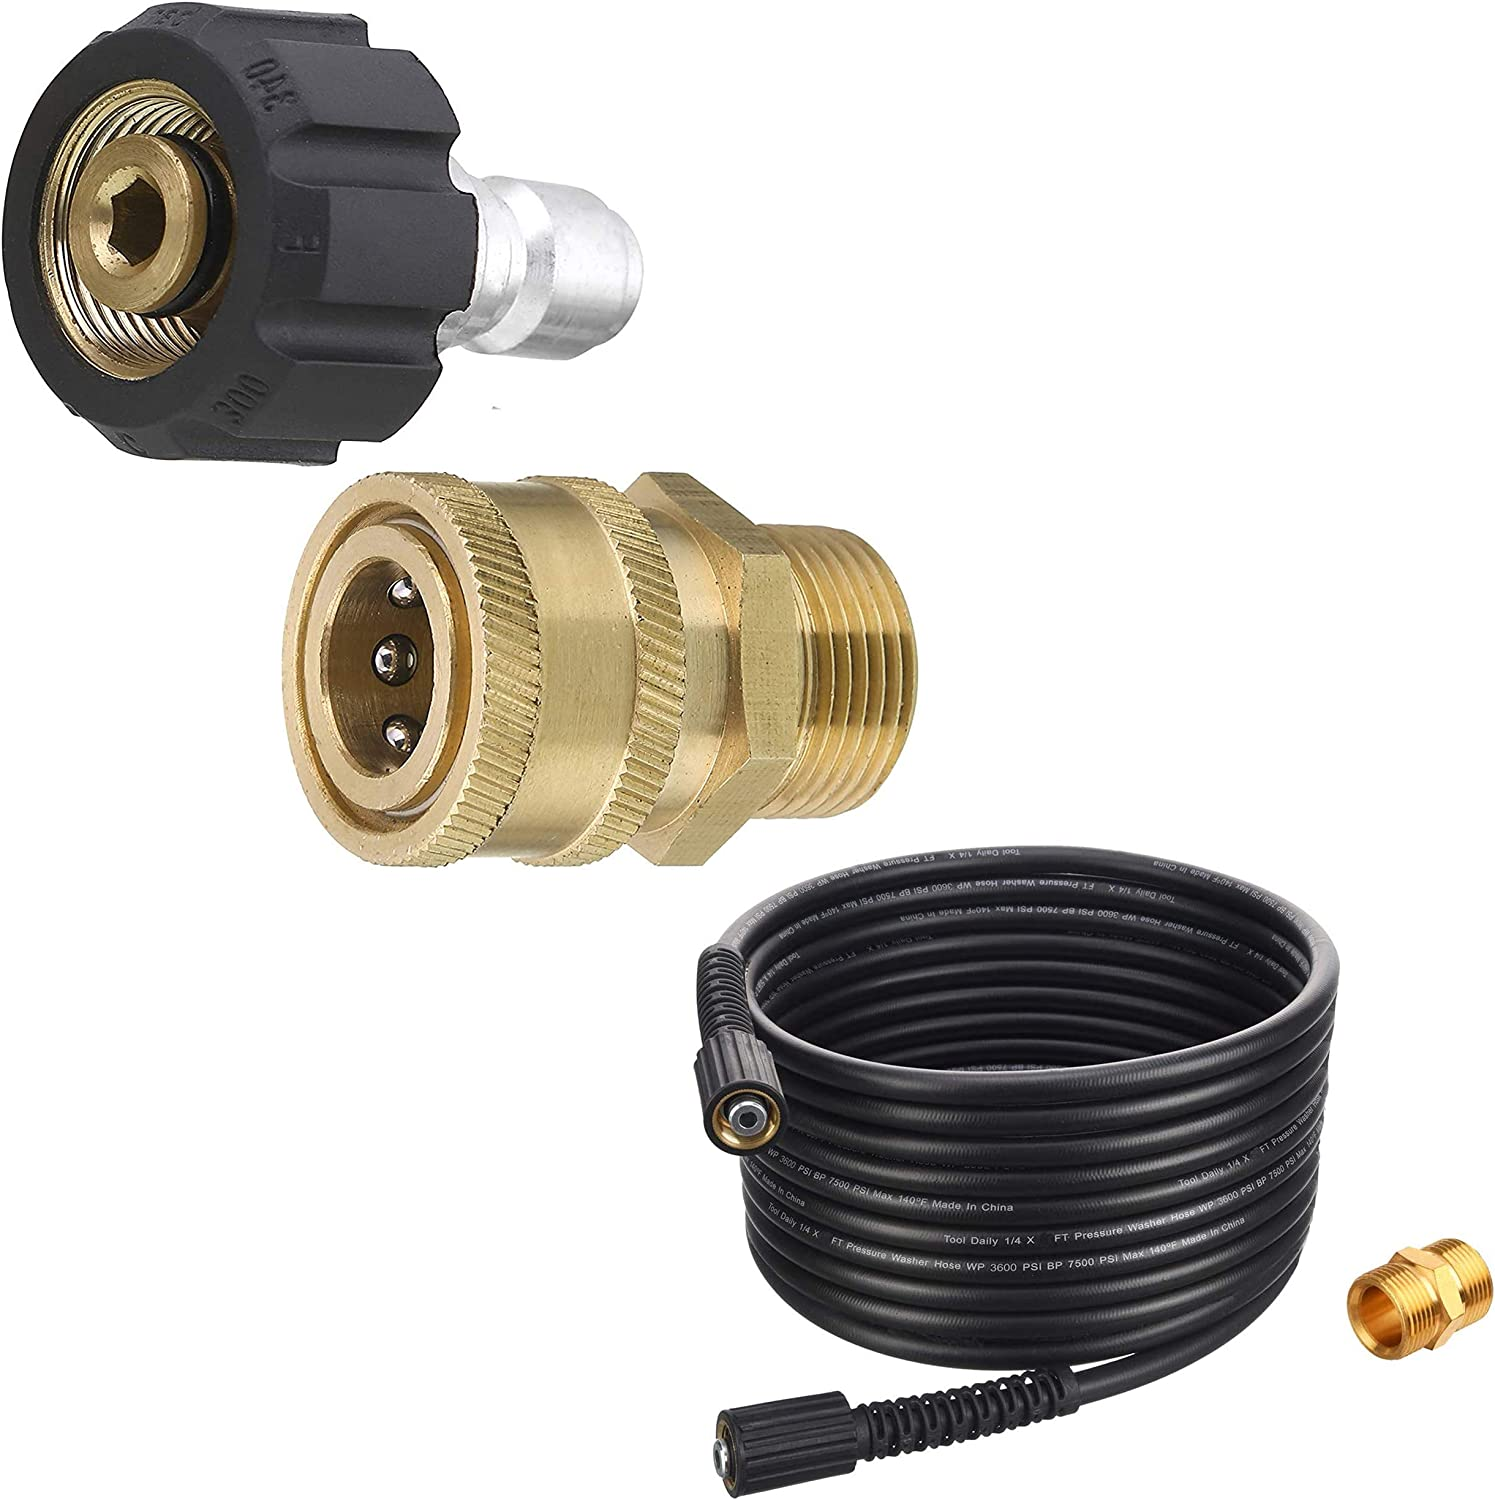 Tool Daily Pressure Washer Adapter Set, High Pressure Washer Hose, 25 FT X 1/4 Inch